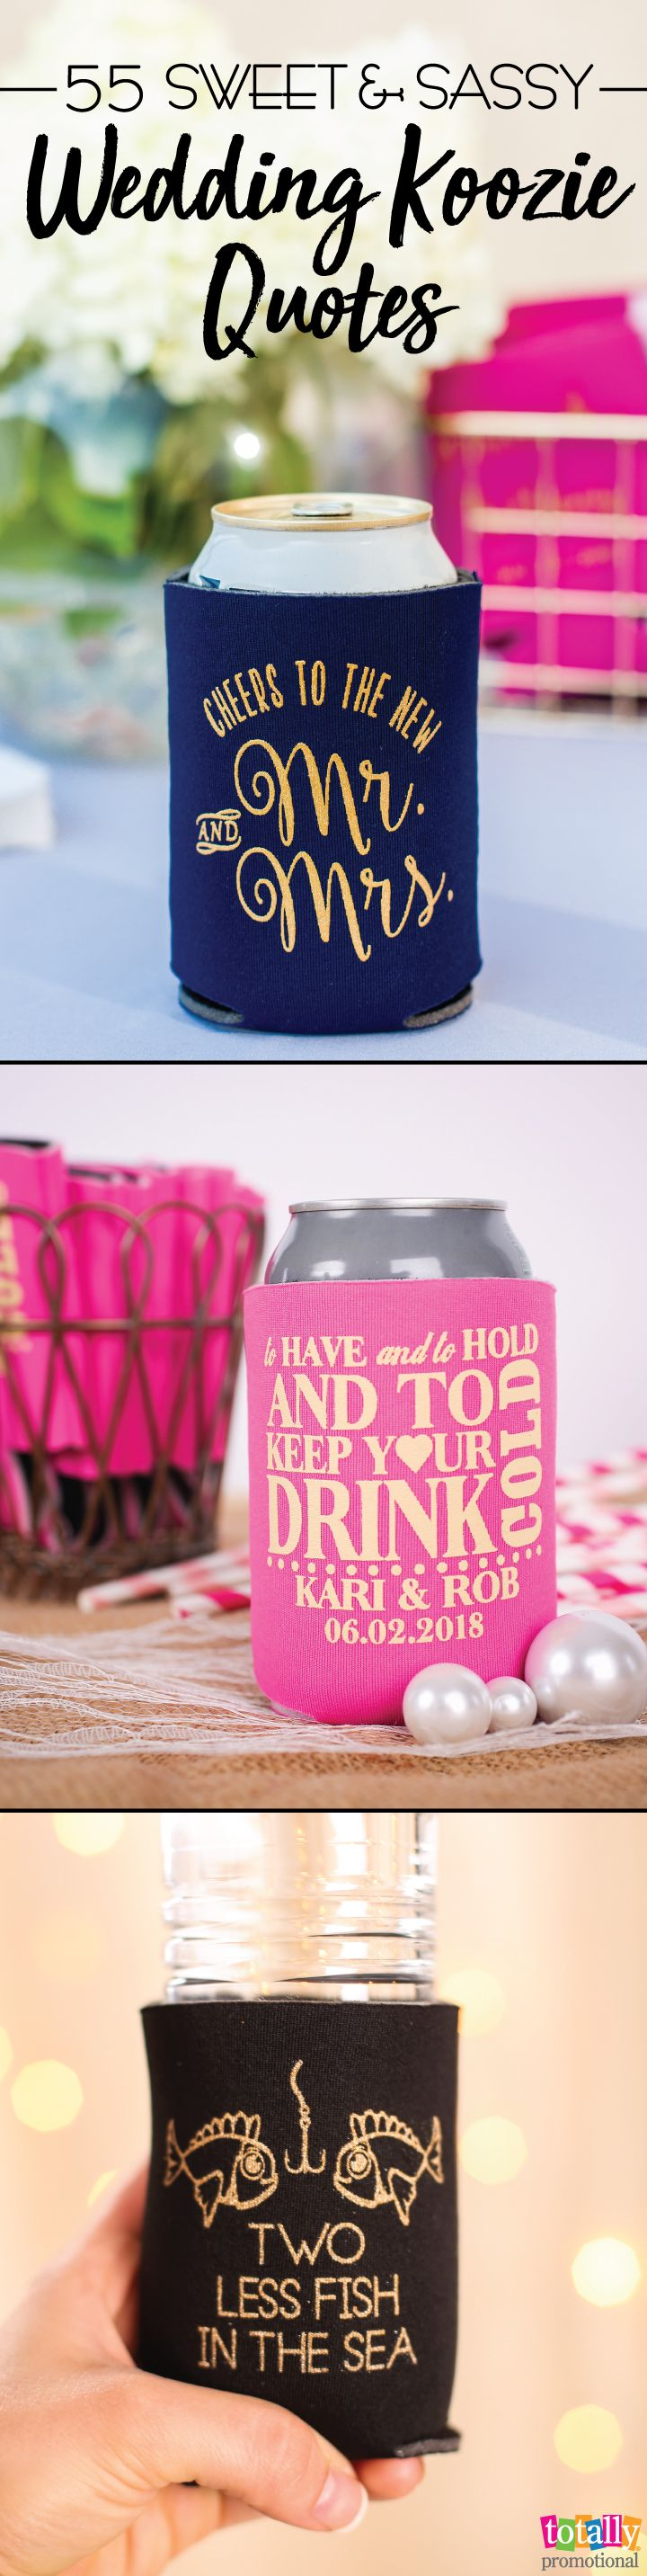 55 Wedding Koozie Quotes: The ultimate list of koozie ideas ...